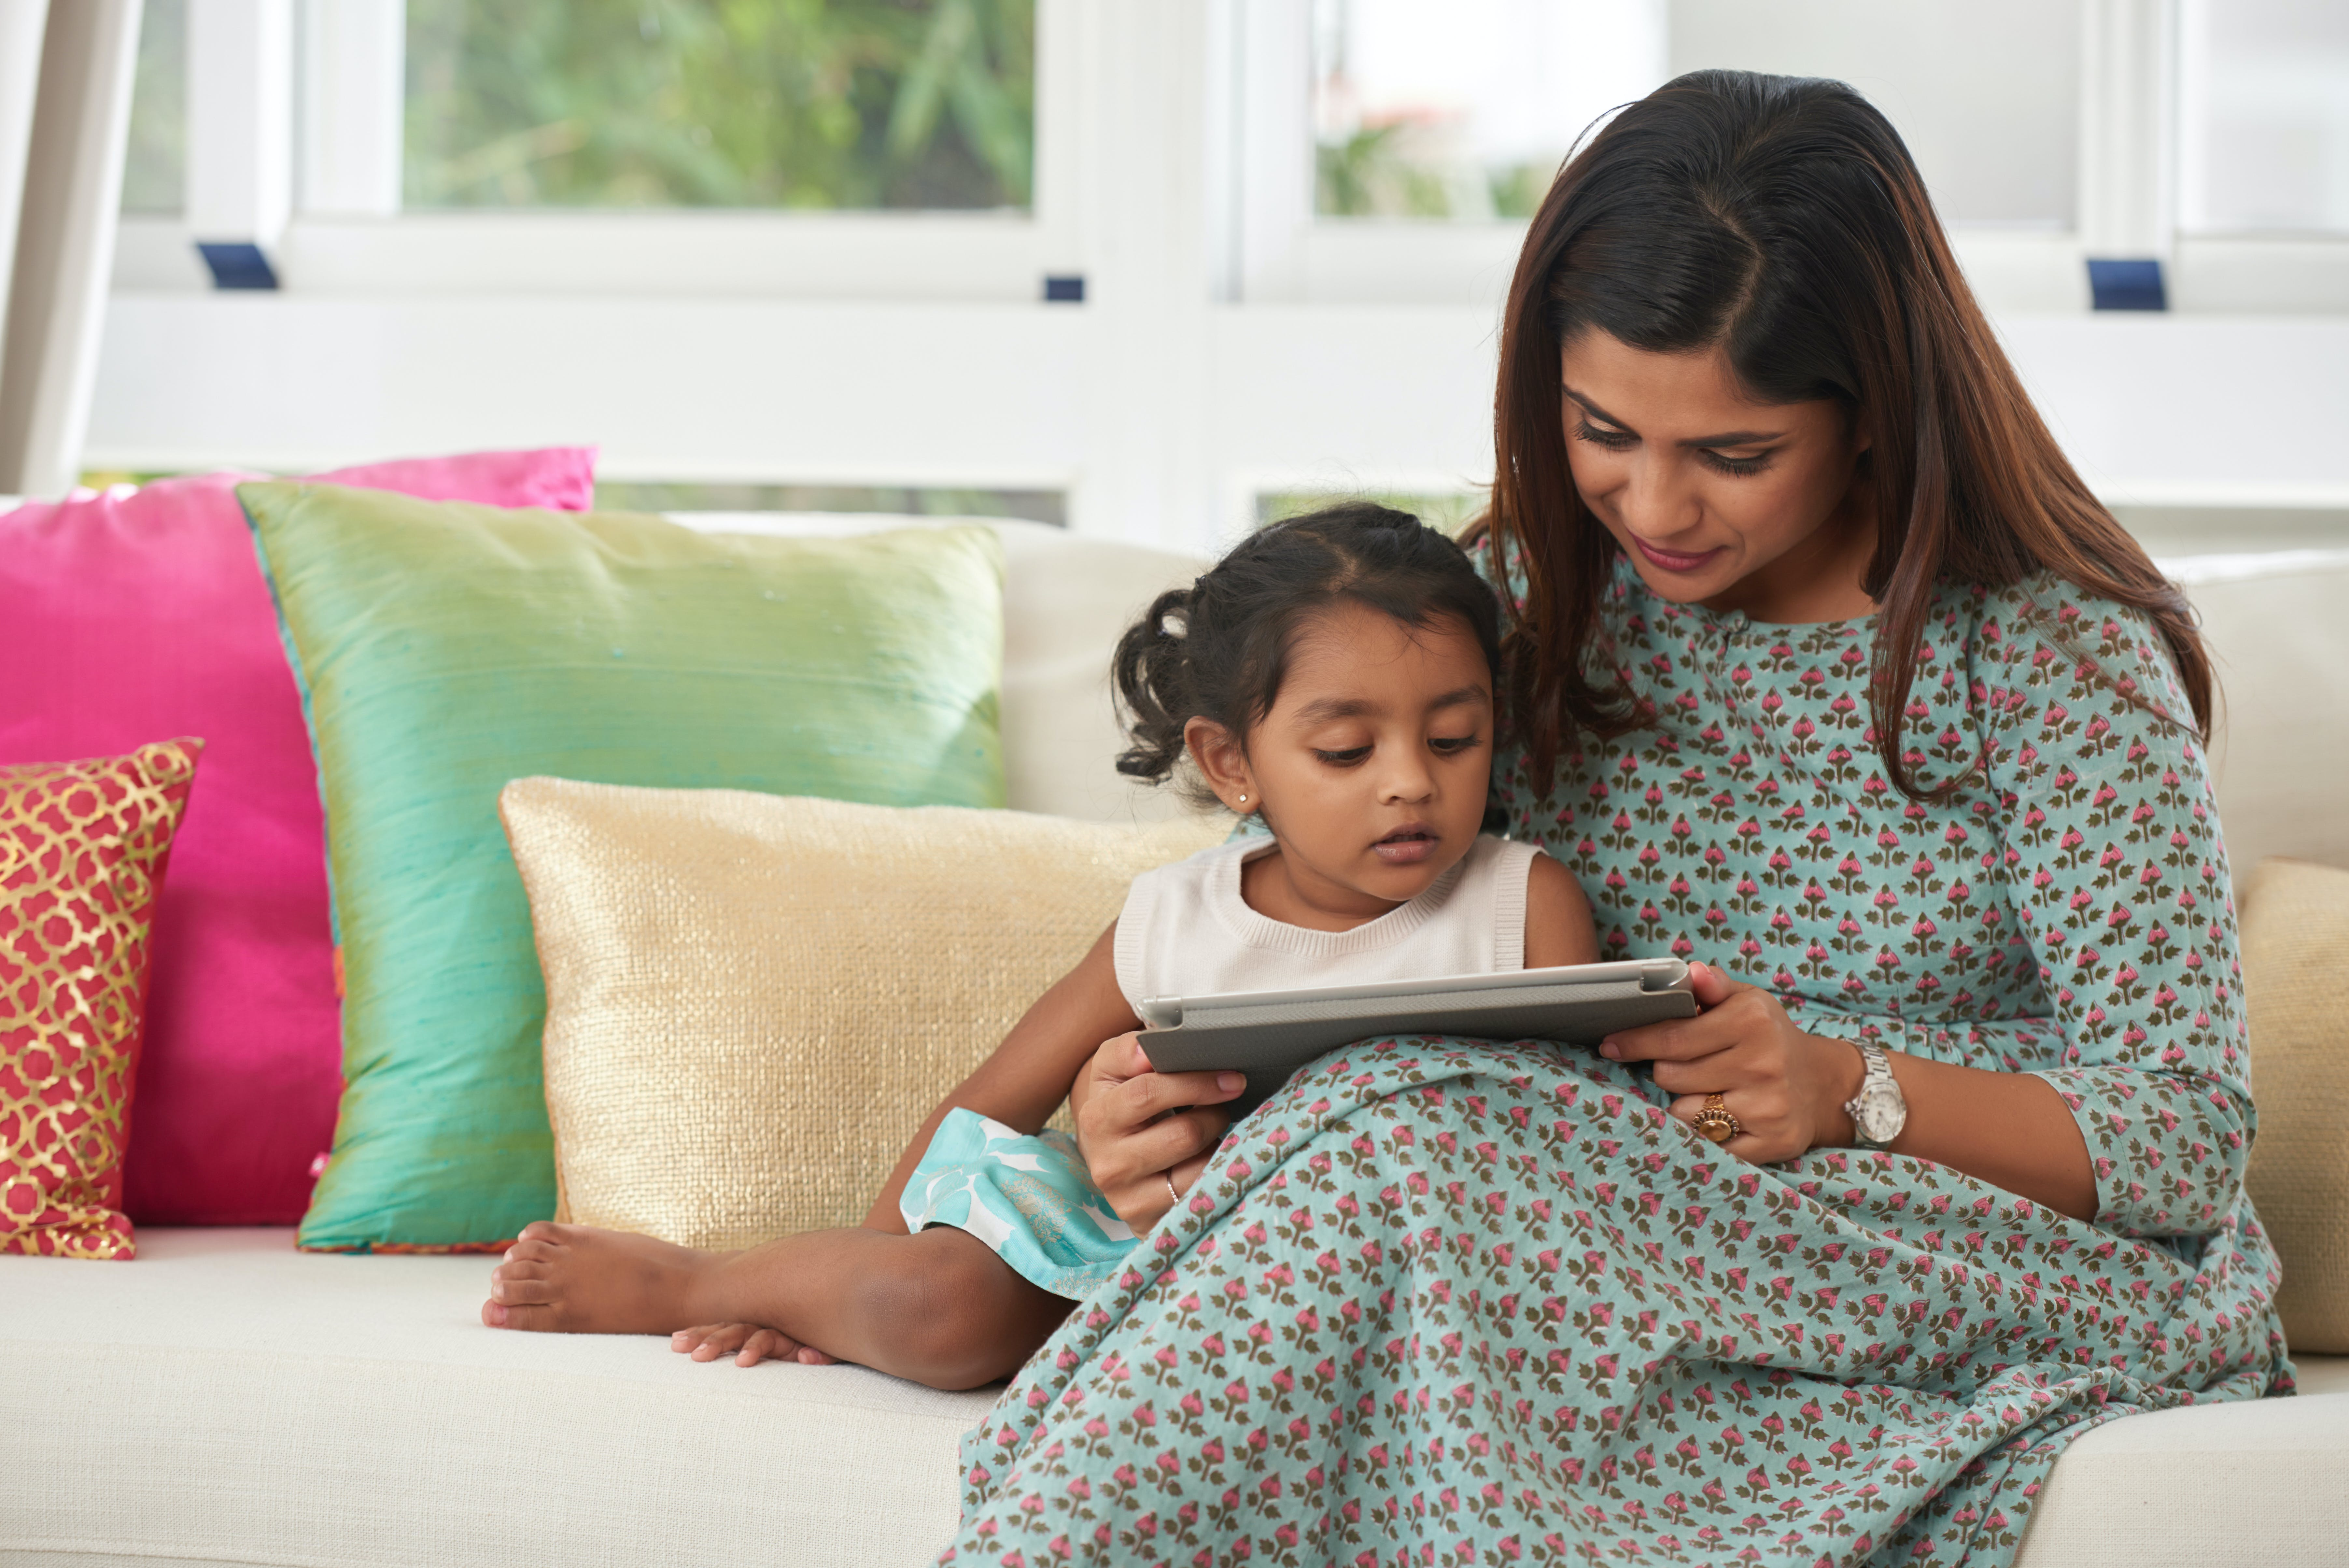 1 read another bedtime story easy ways to be a better mom